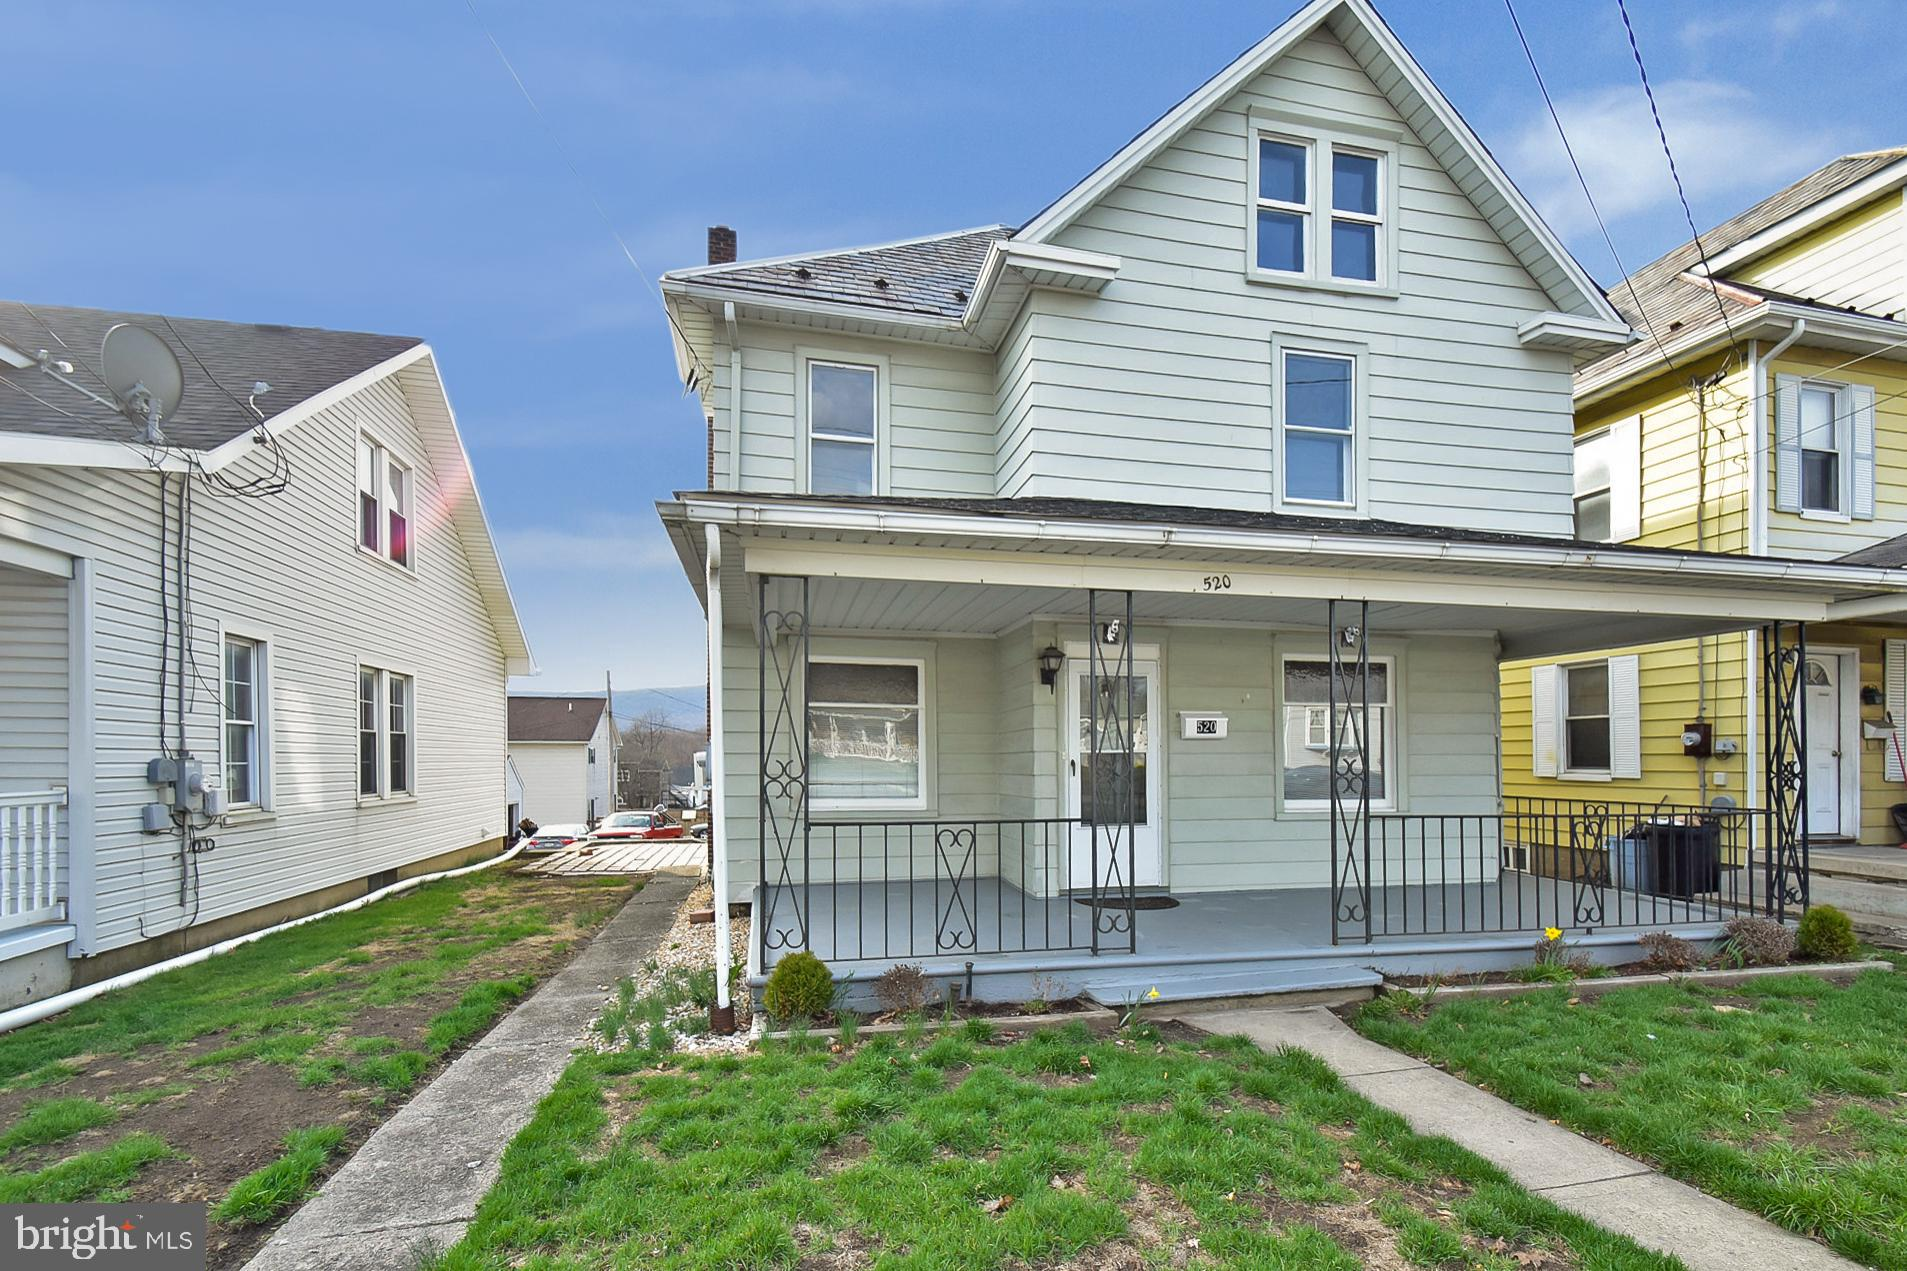 520 S BROADWAY, WIND GAP, PA 18091